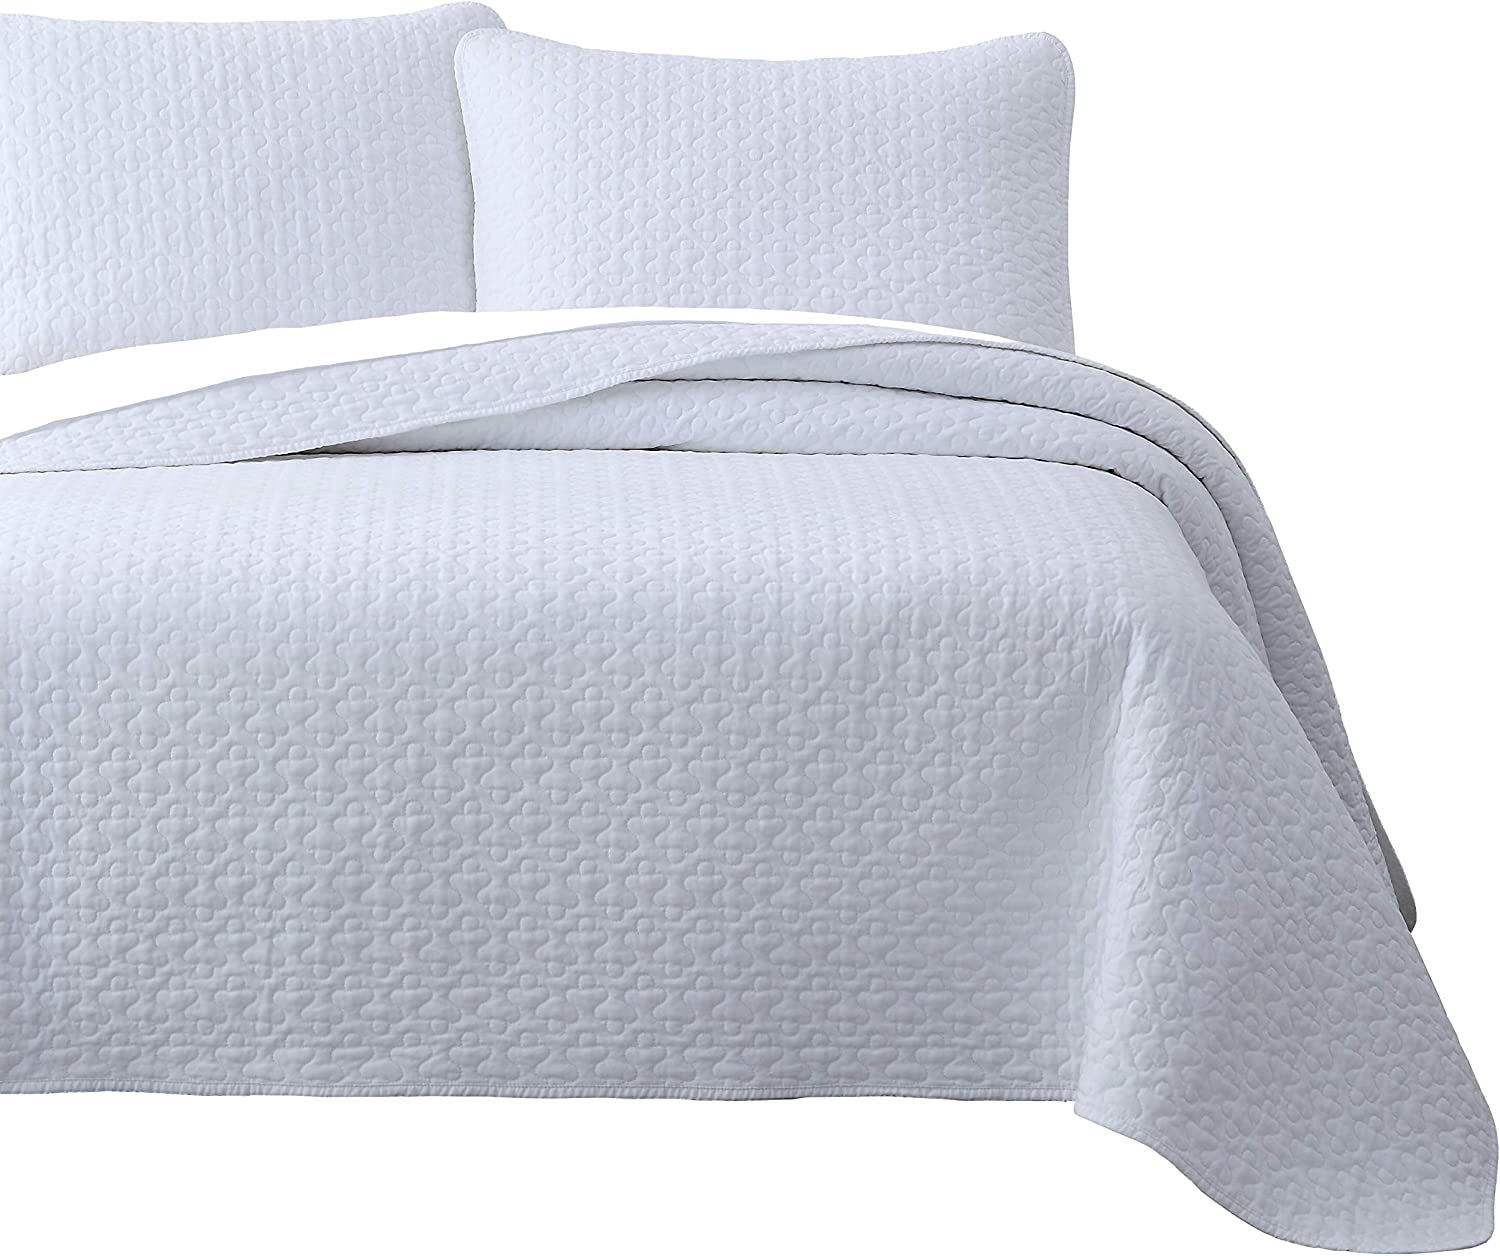 Vega Prewashed 3 Piece Quilted Quilt, Coverlet & Bed Cover Set, Stitched Pattern, Solid color, Soft Microfiber Shell 100% Cotton Filling   White   King Cal-King Size Bedspread